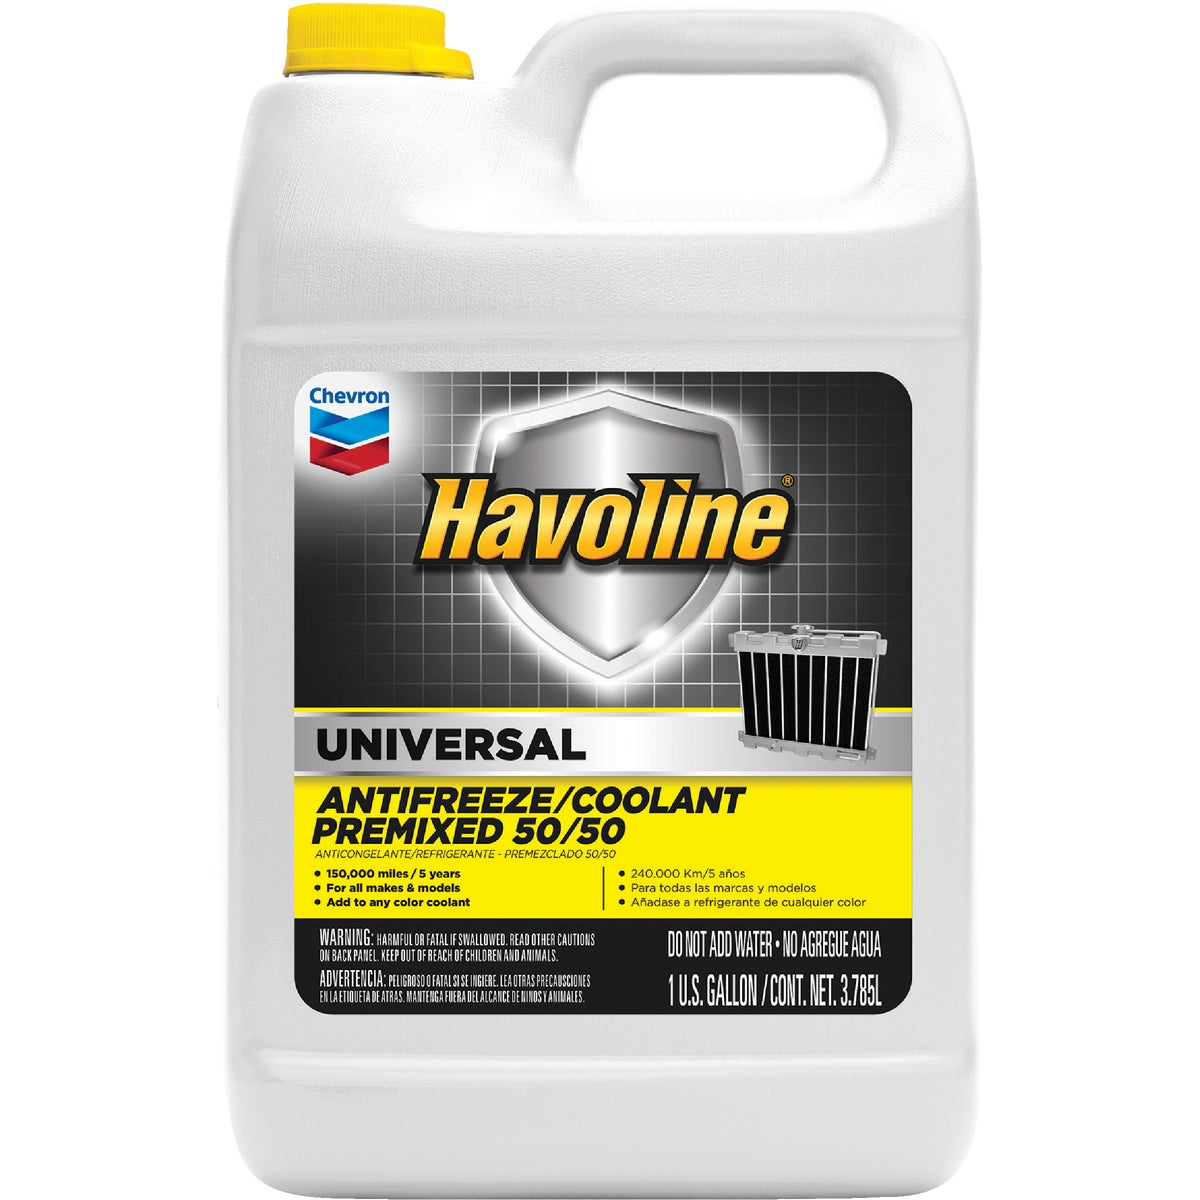 50/50 UNIVRSL ANTIFREEZE - 227063497 by Chevron Texaco